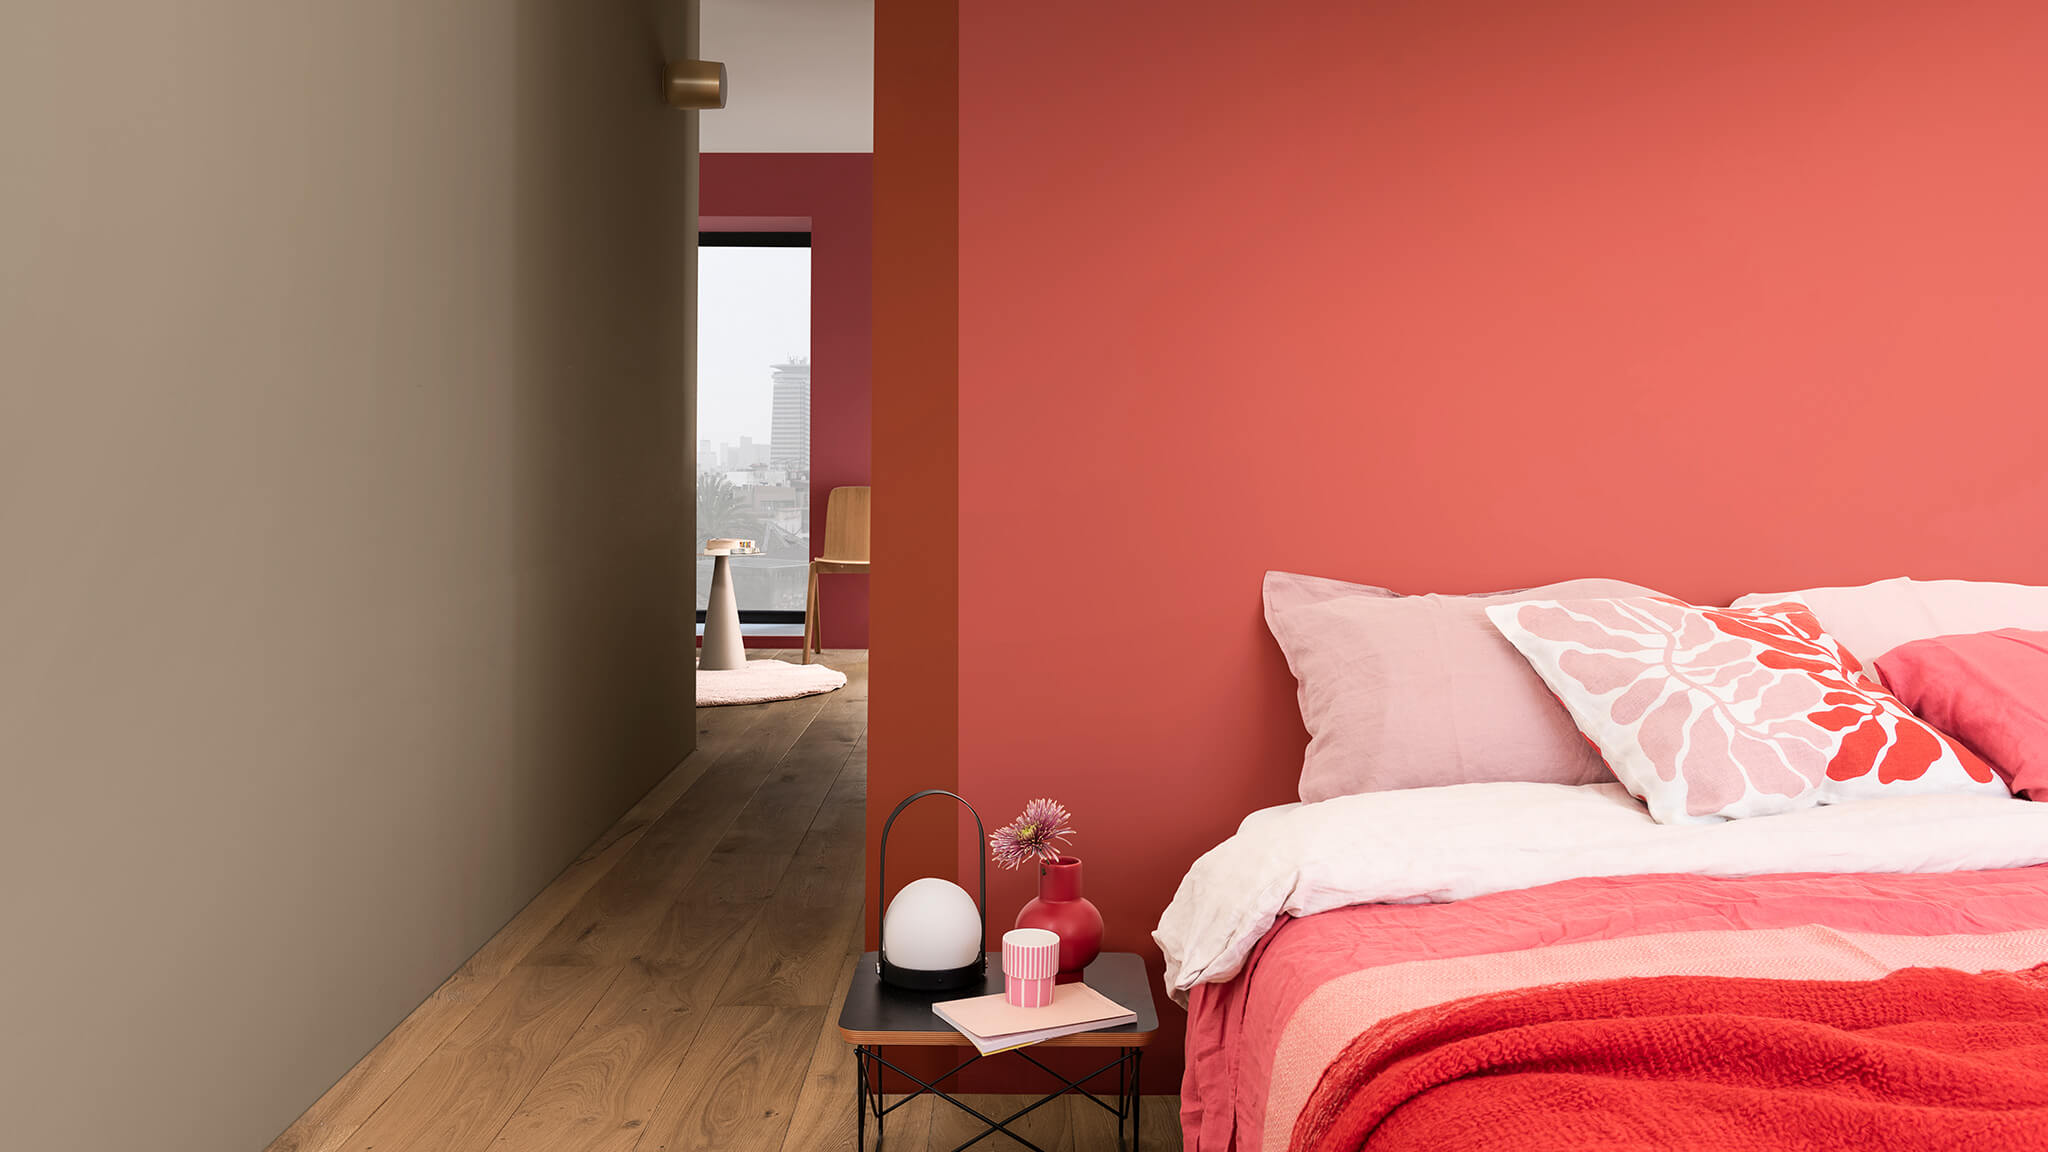 Colour of the Year 2021 with warm shades of red and pink